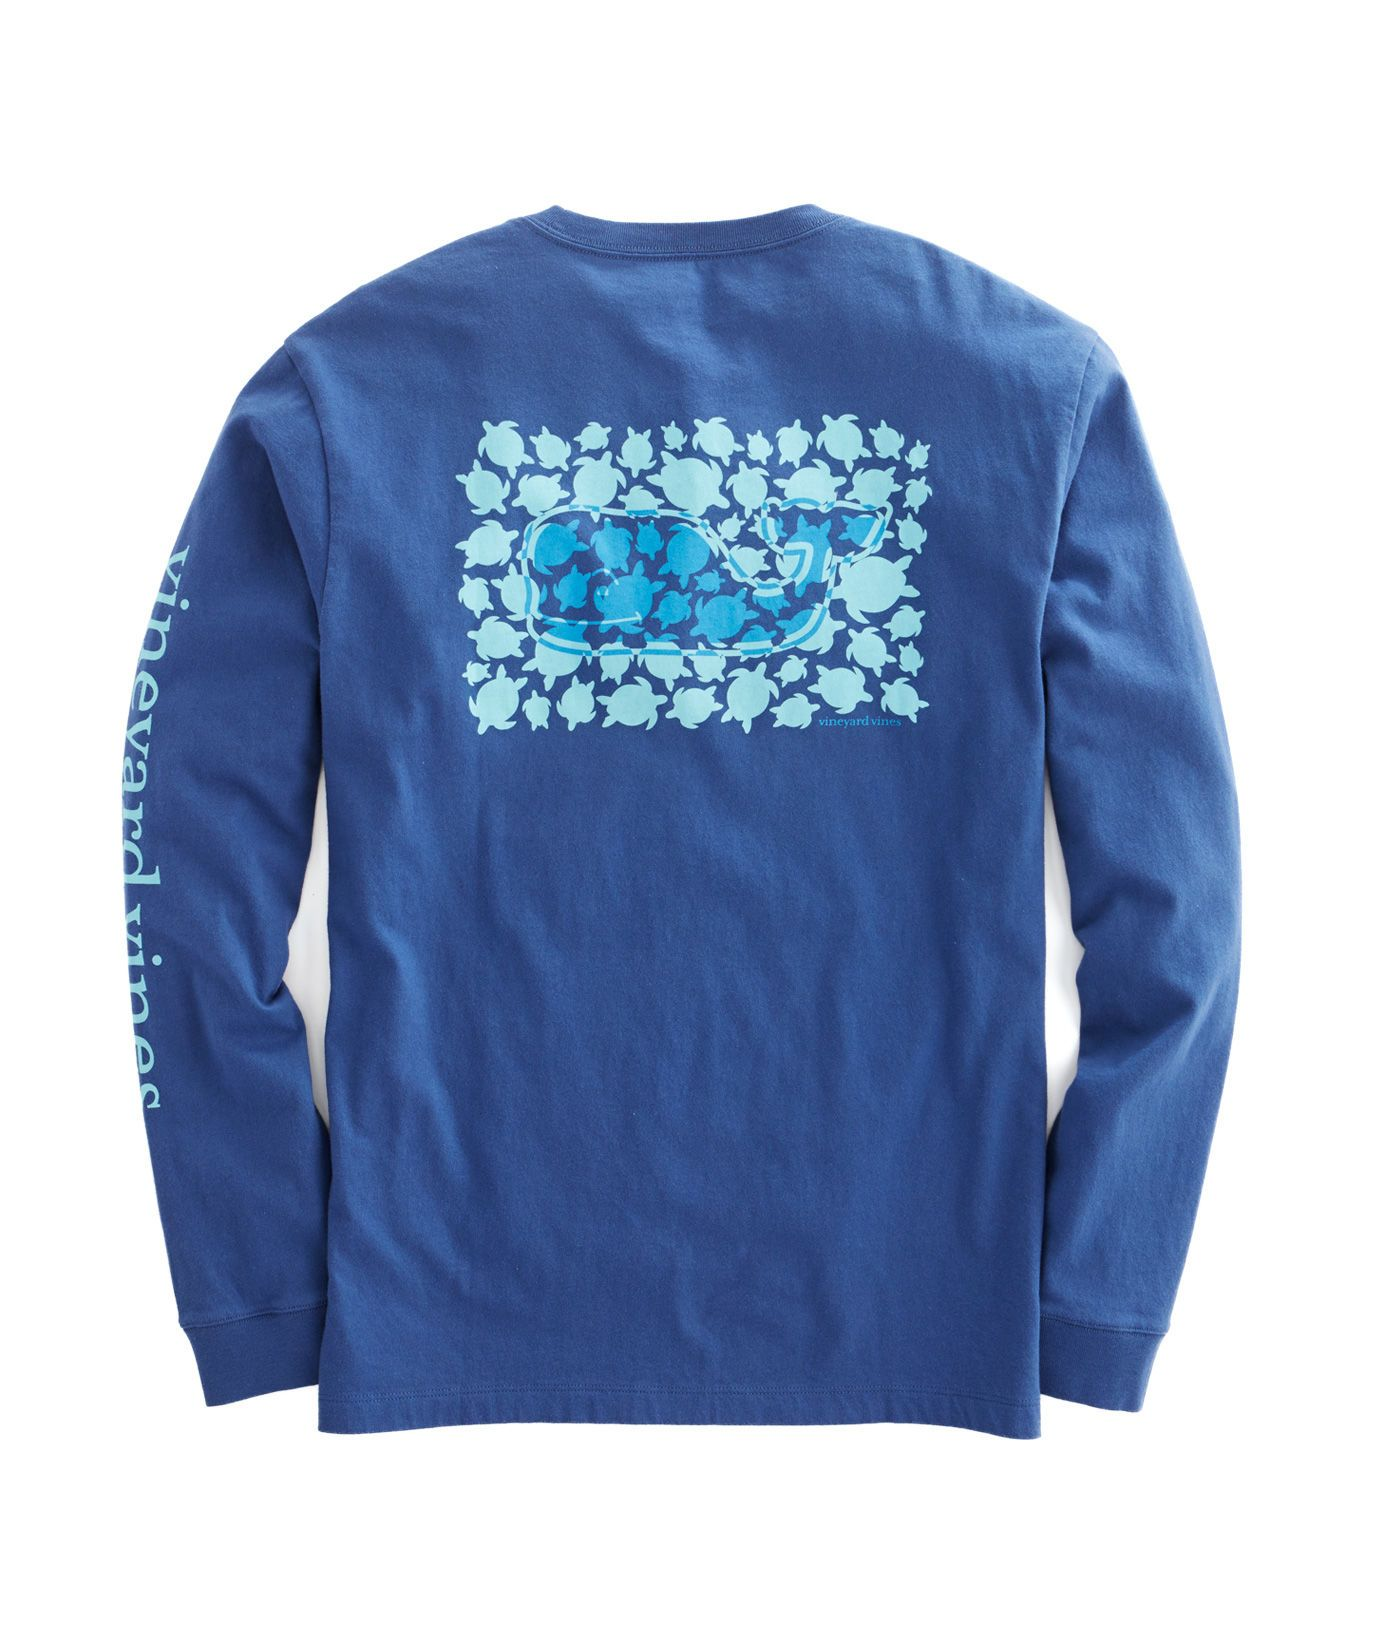 Shop Long-Sleeve Turtle Toss Pocket T-Shirt at vineyard vines